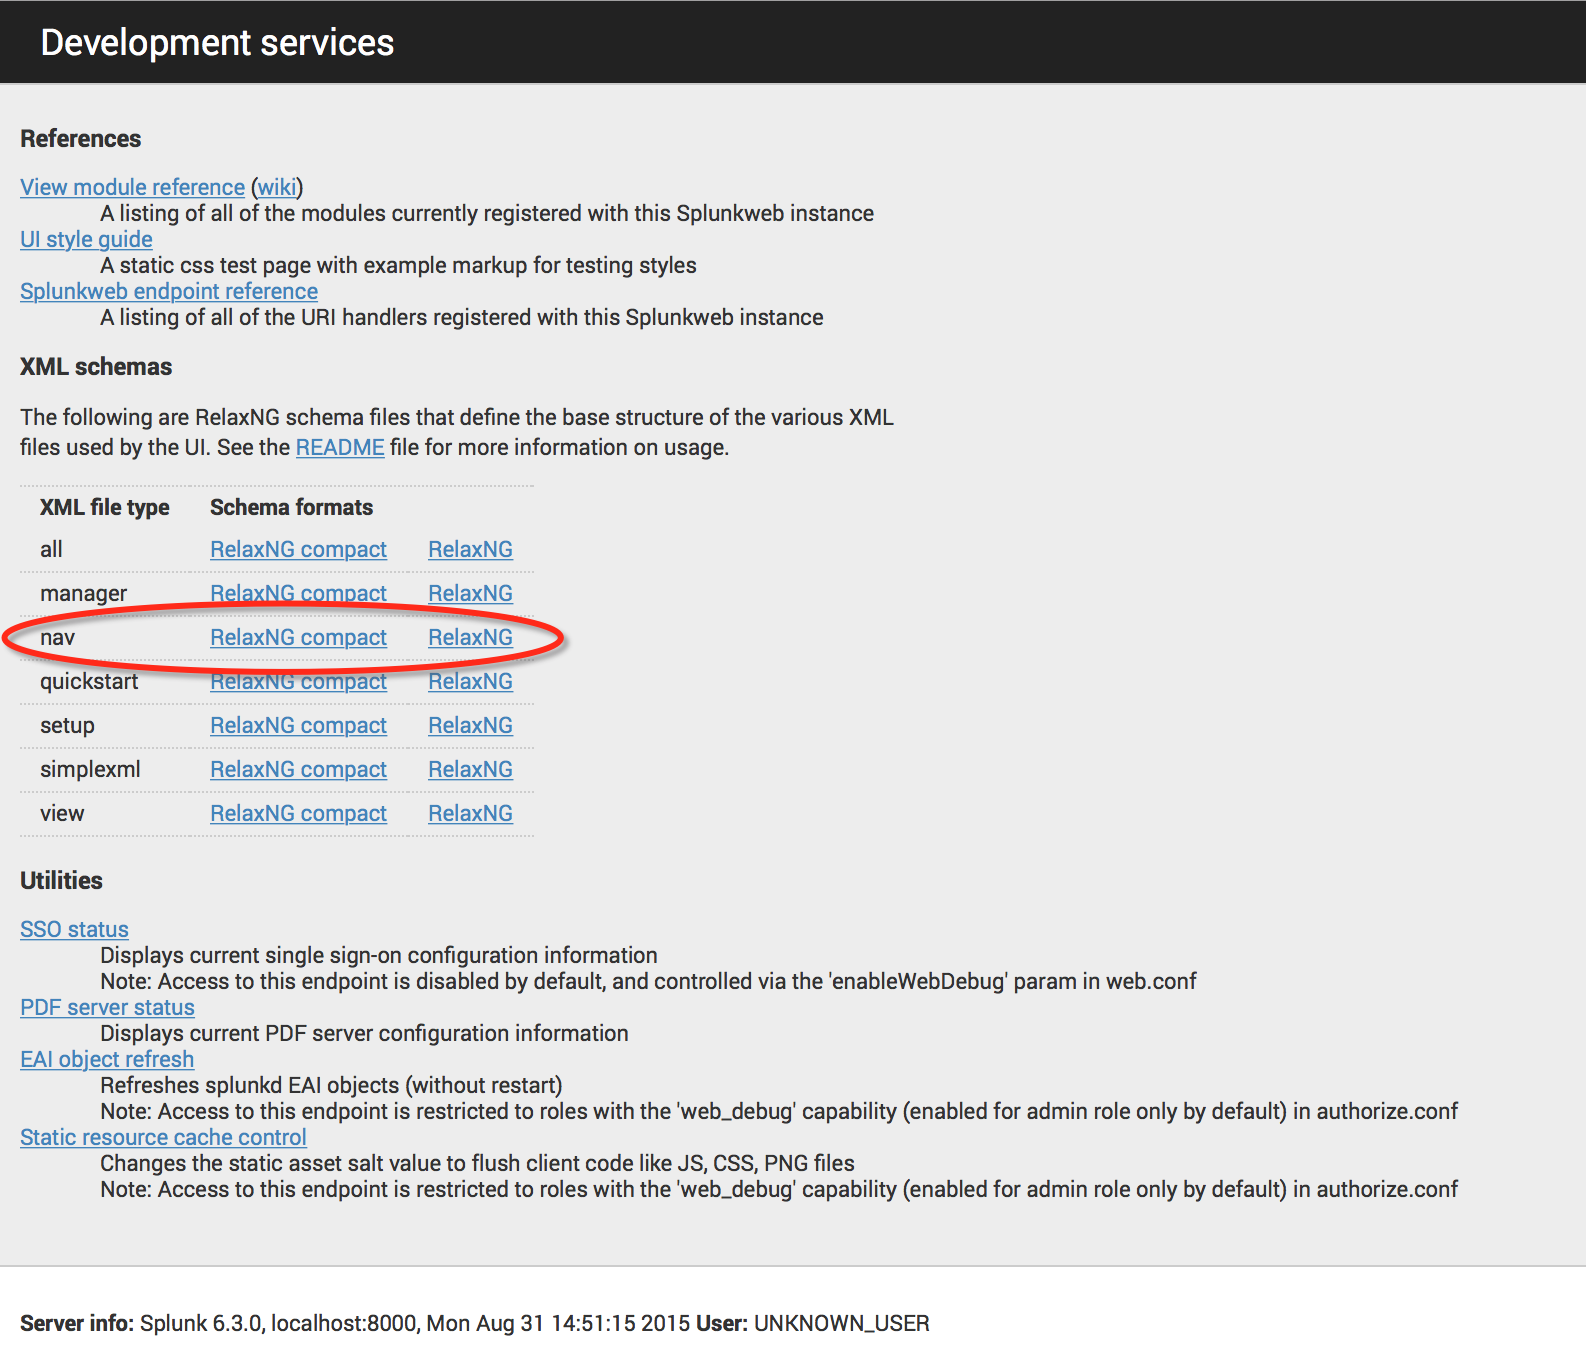 Deployment Services page